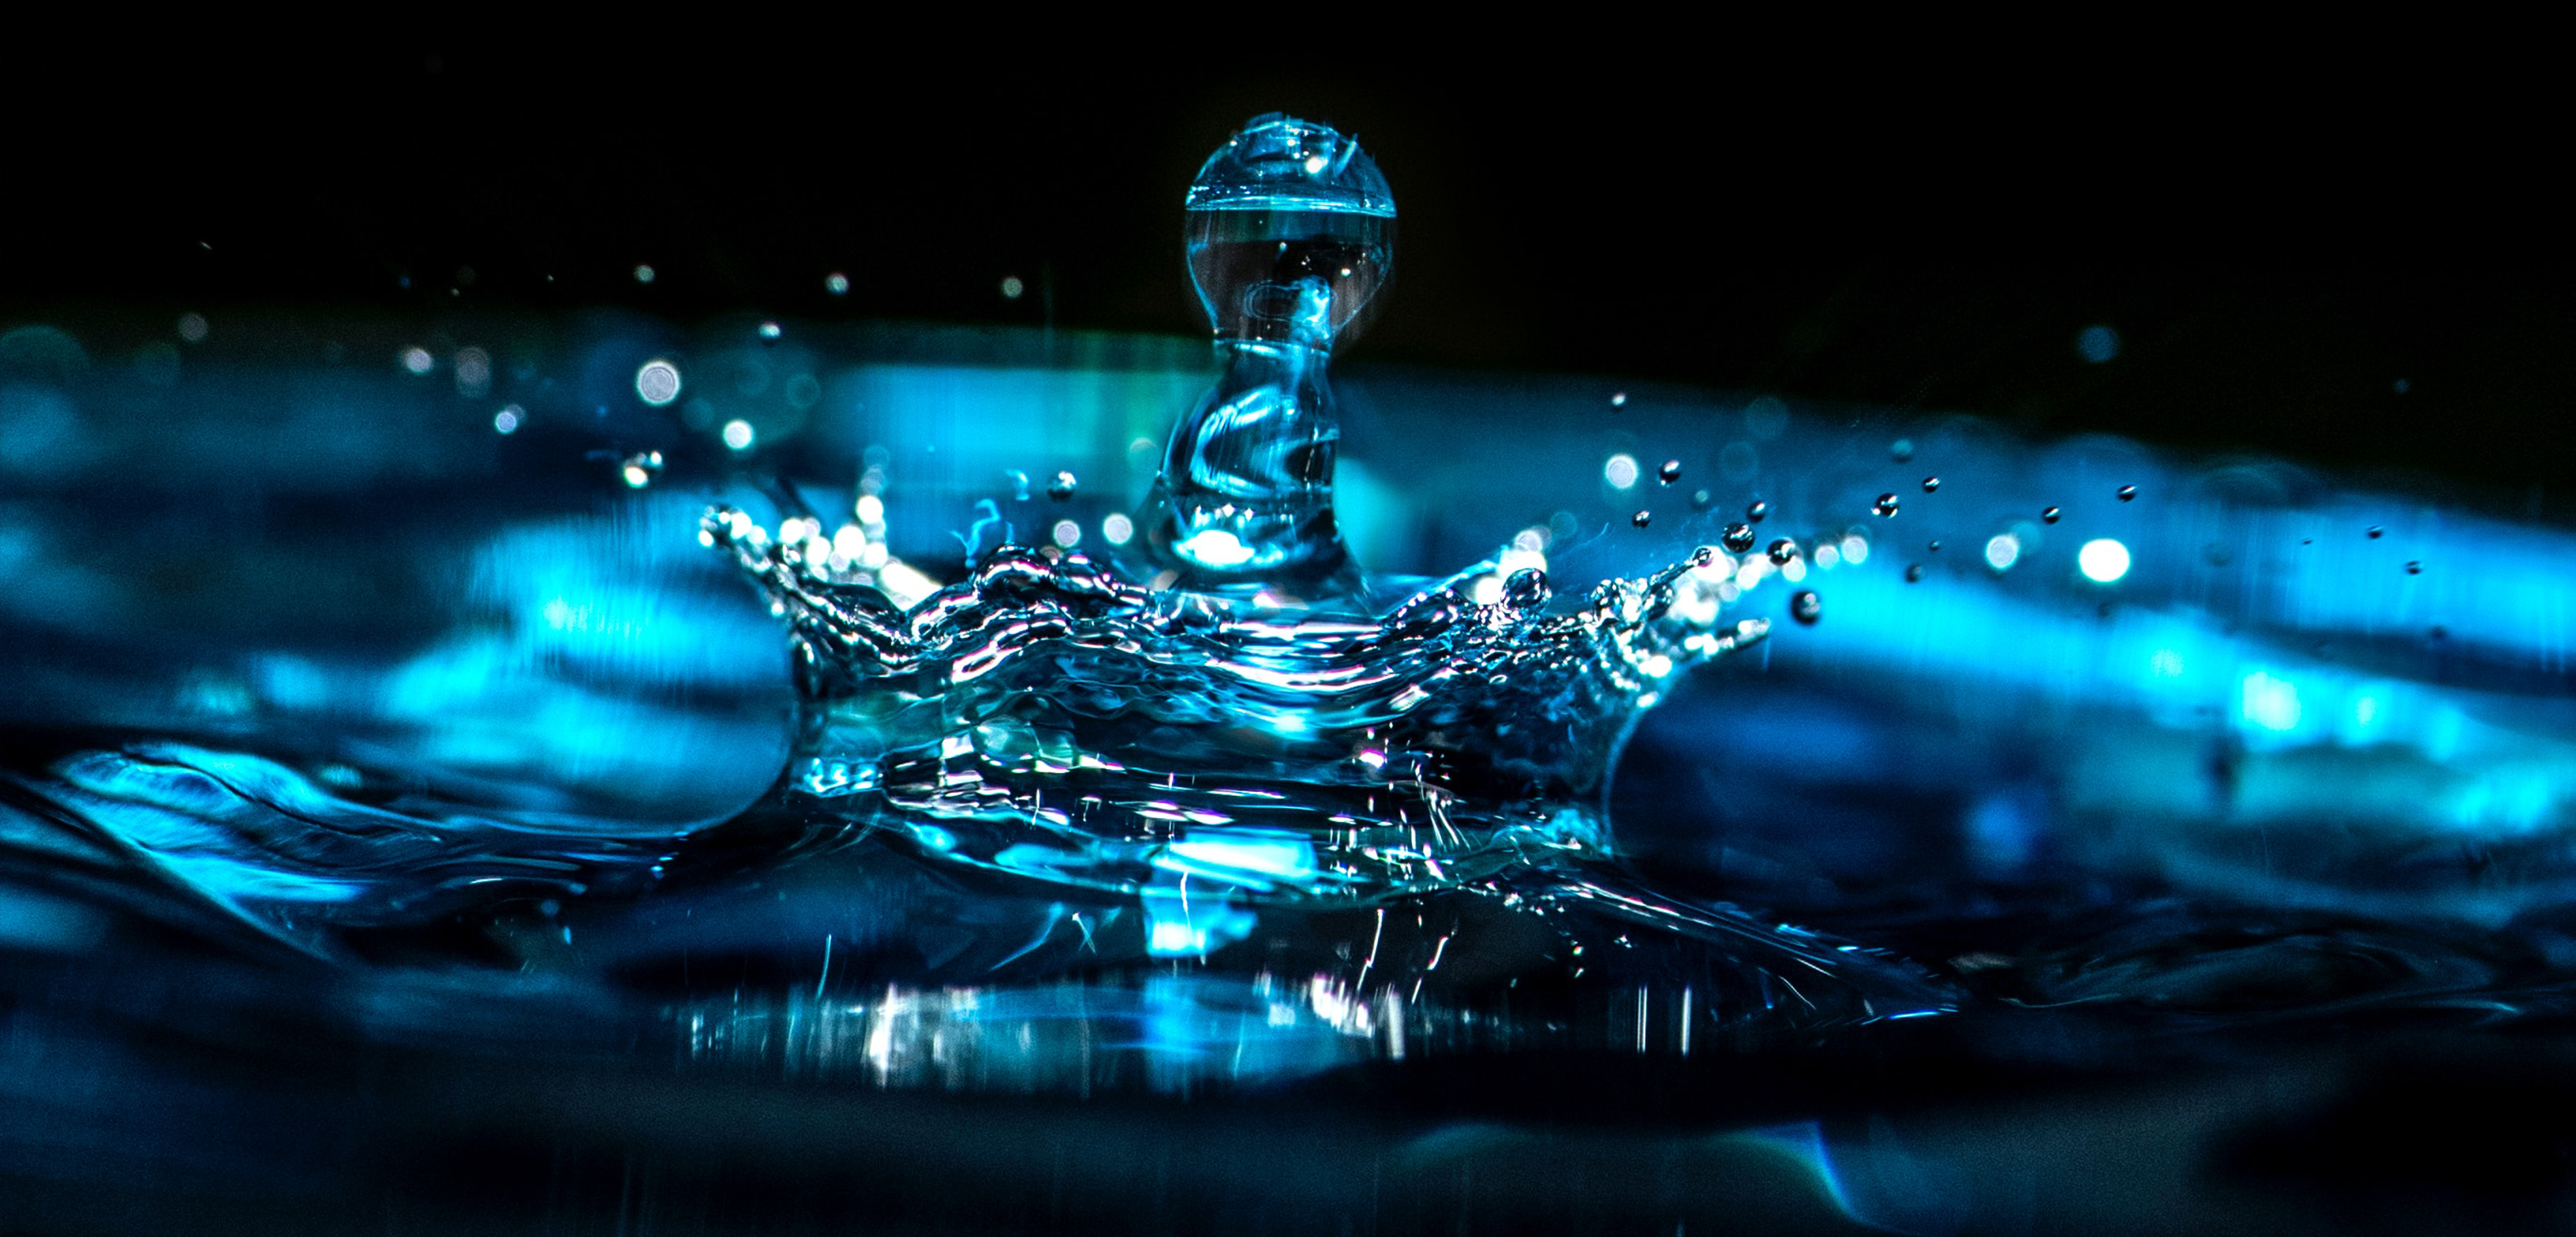 A close-up of a water droplet.